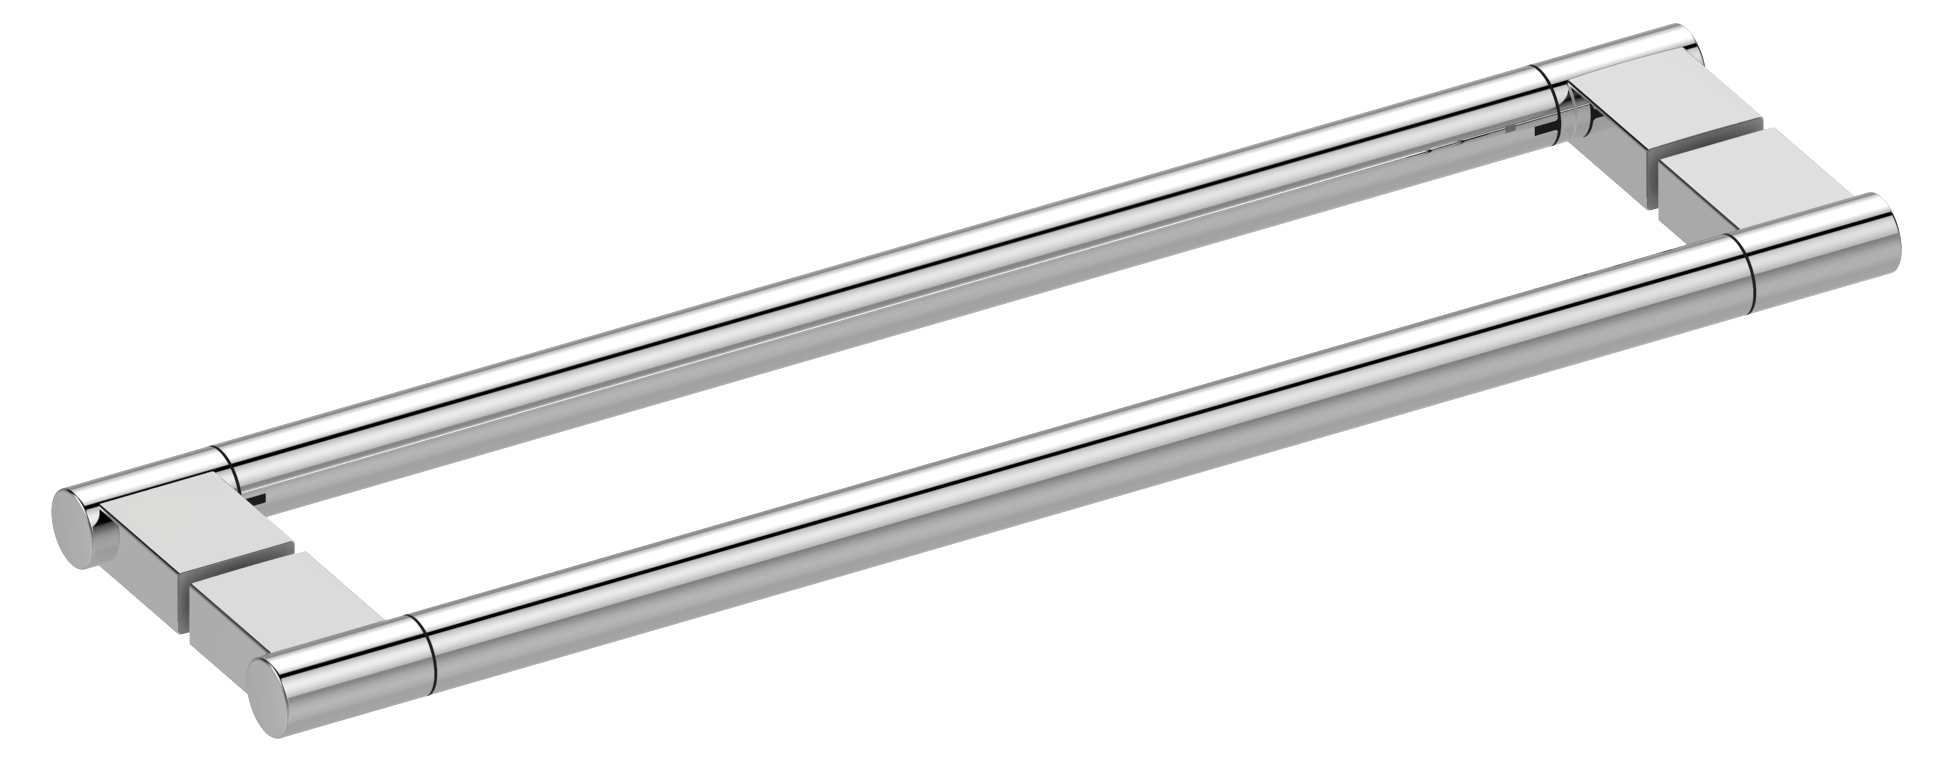 Keuco 14908010503 Shower Door Handle (Double) - Chrome Plated